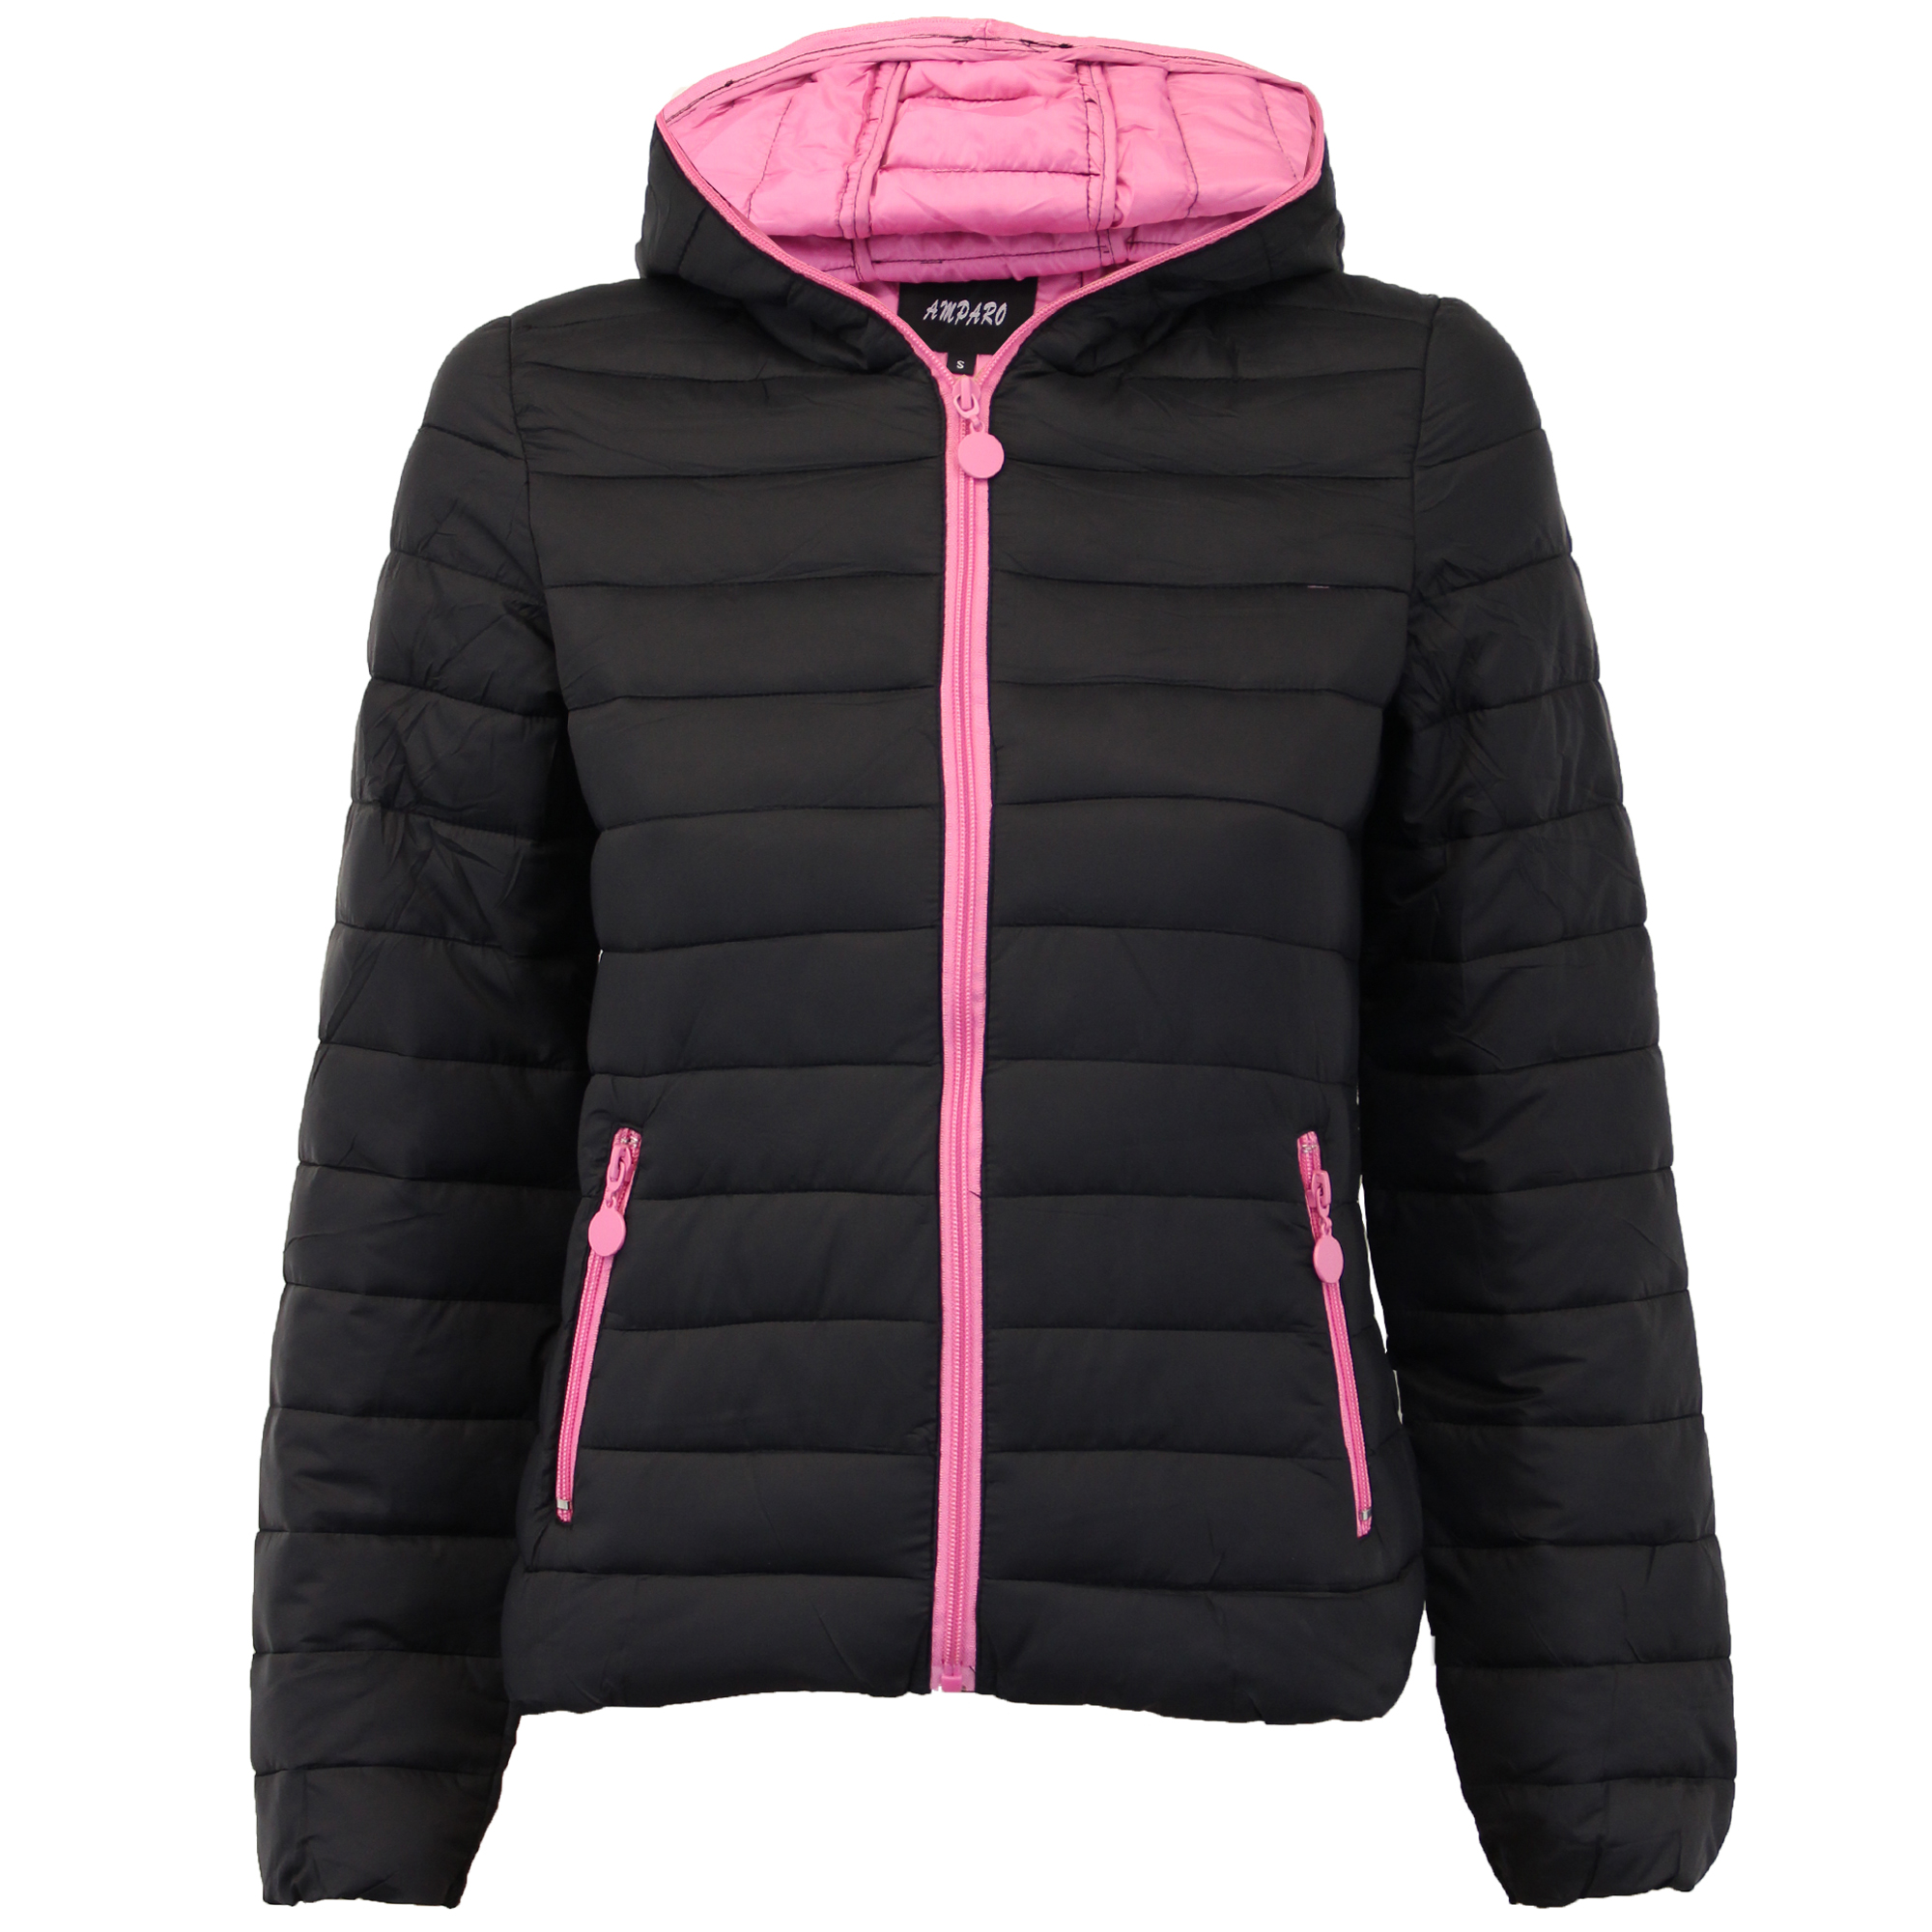 Find great deals on eBay for ladies padded coats. Shop with confidence.